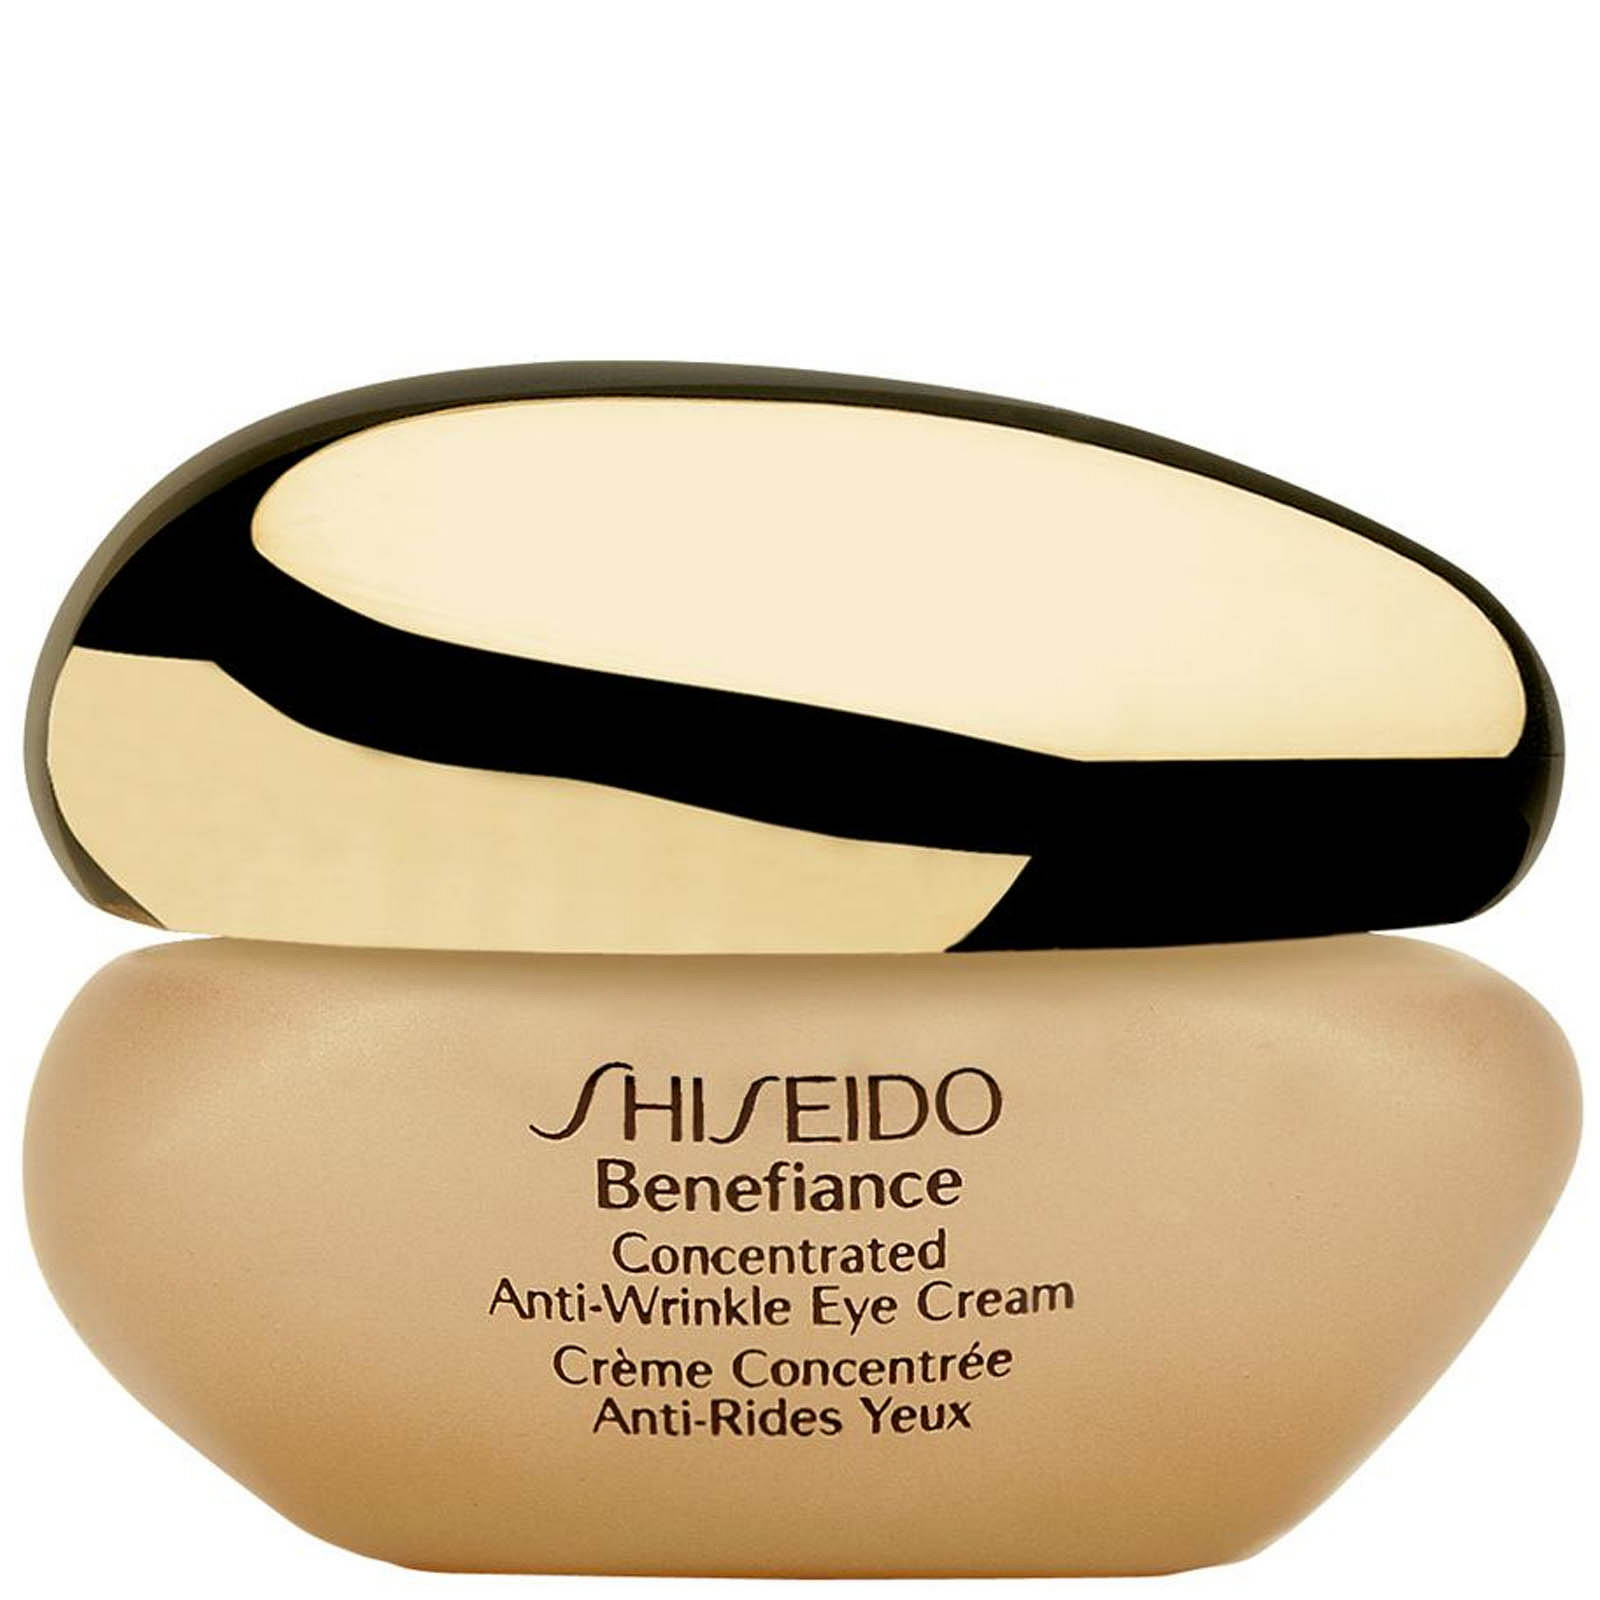 Shiseido Eye & Lip Care Benefiance: Concentrated Anti-Wrinkle Eye Cream 15ml / 0.51 oz.